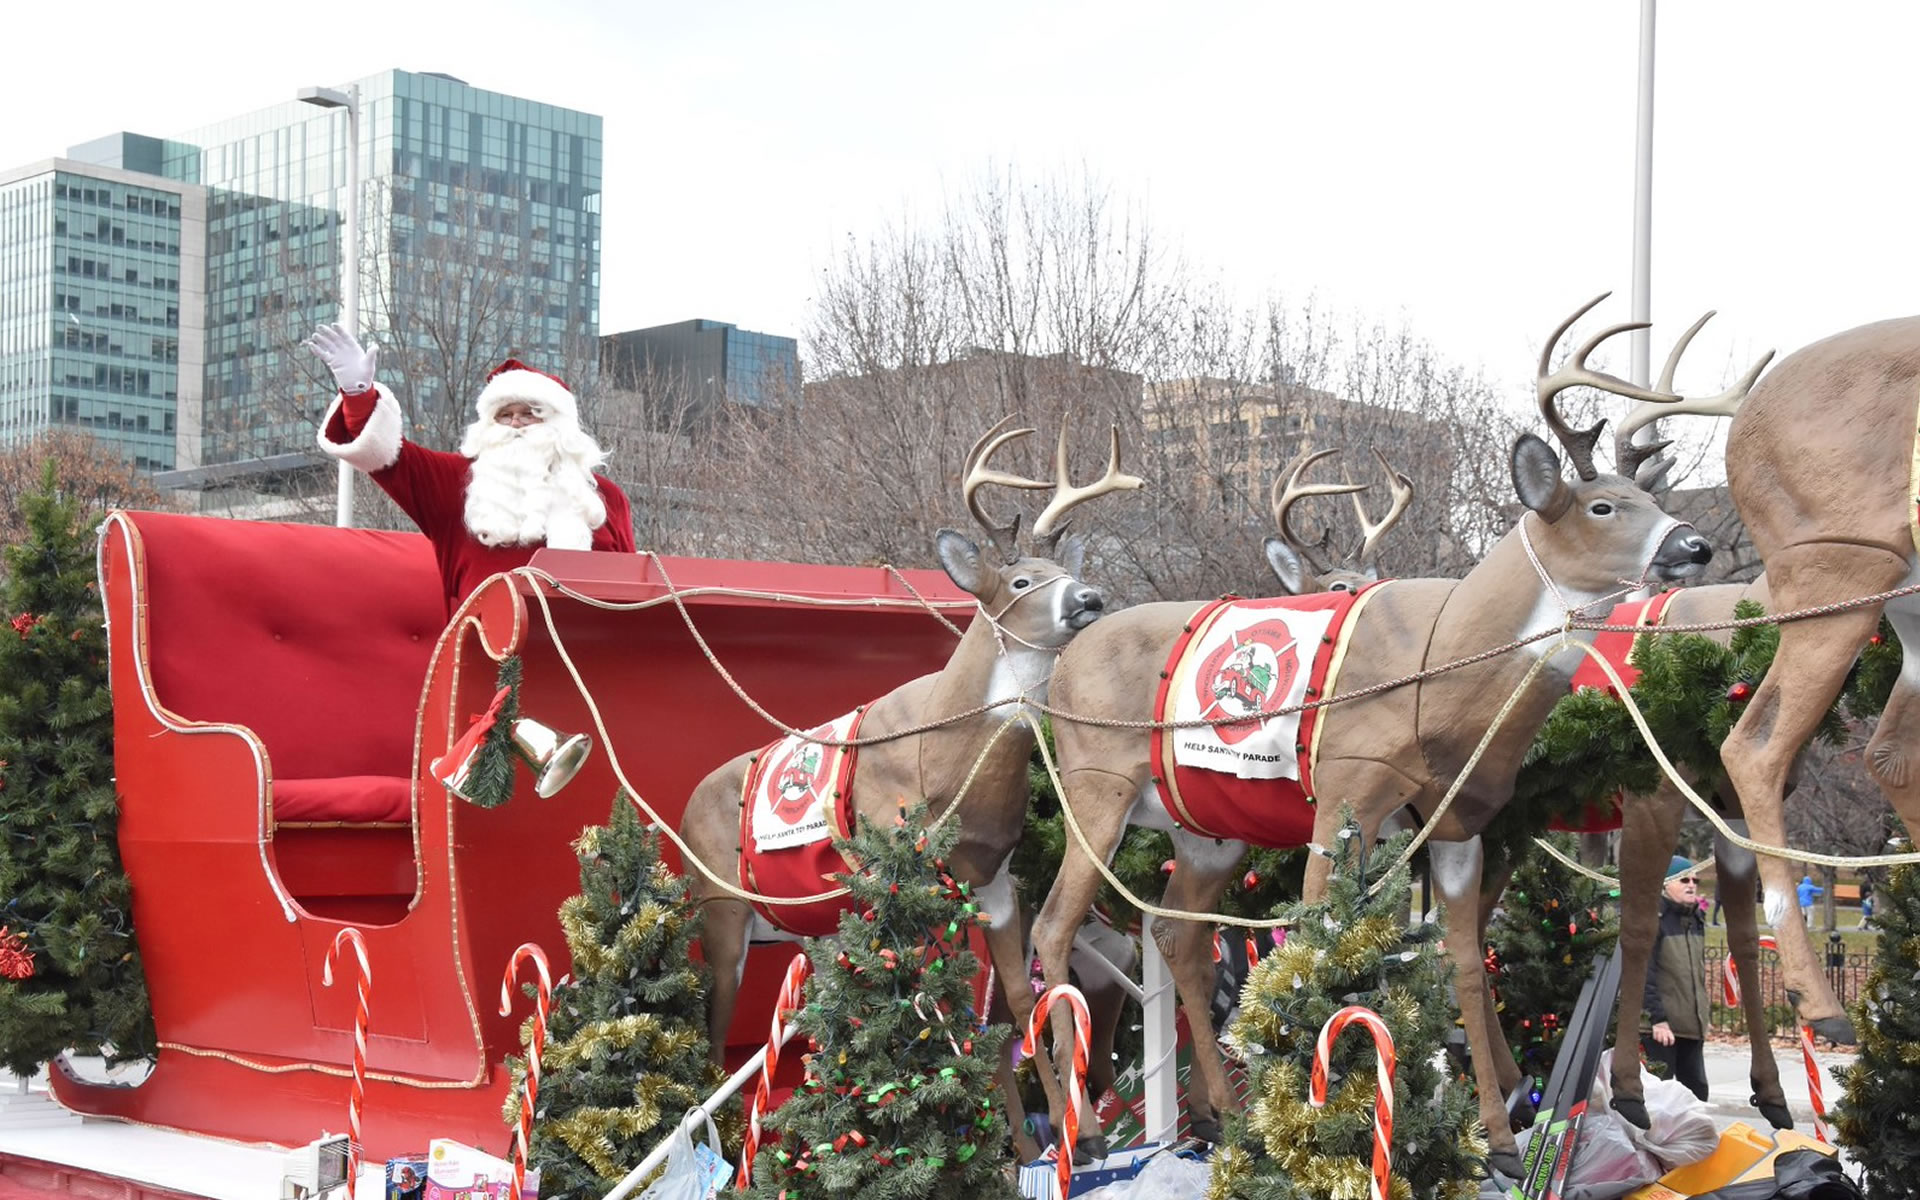 Santa Claus Parade, hockey and Craft Fair all in the Glebe this weekend